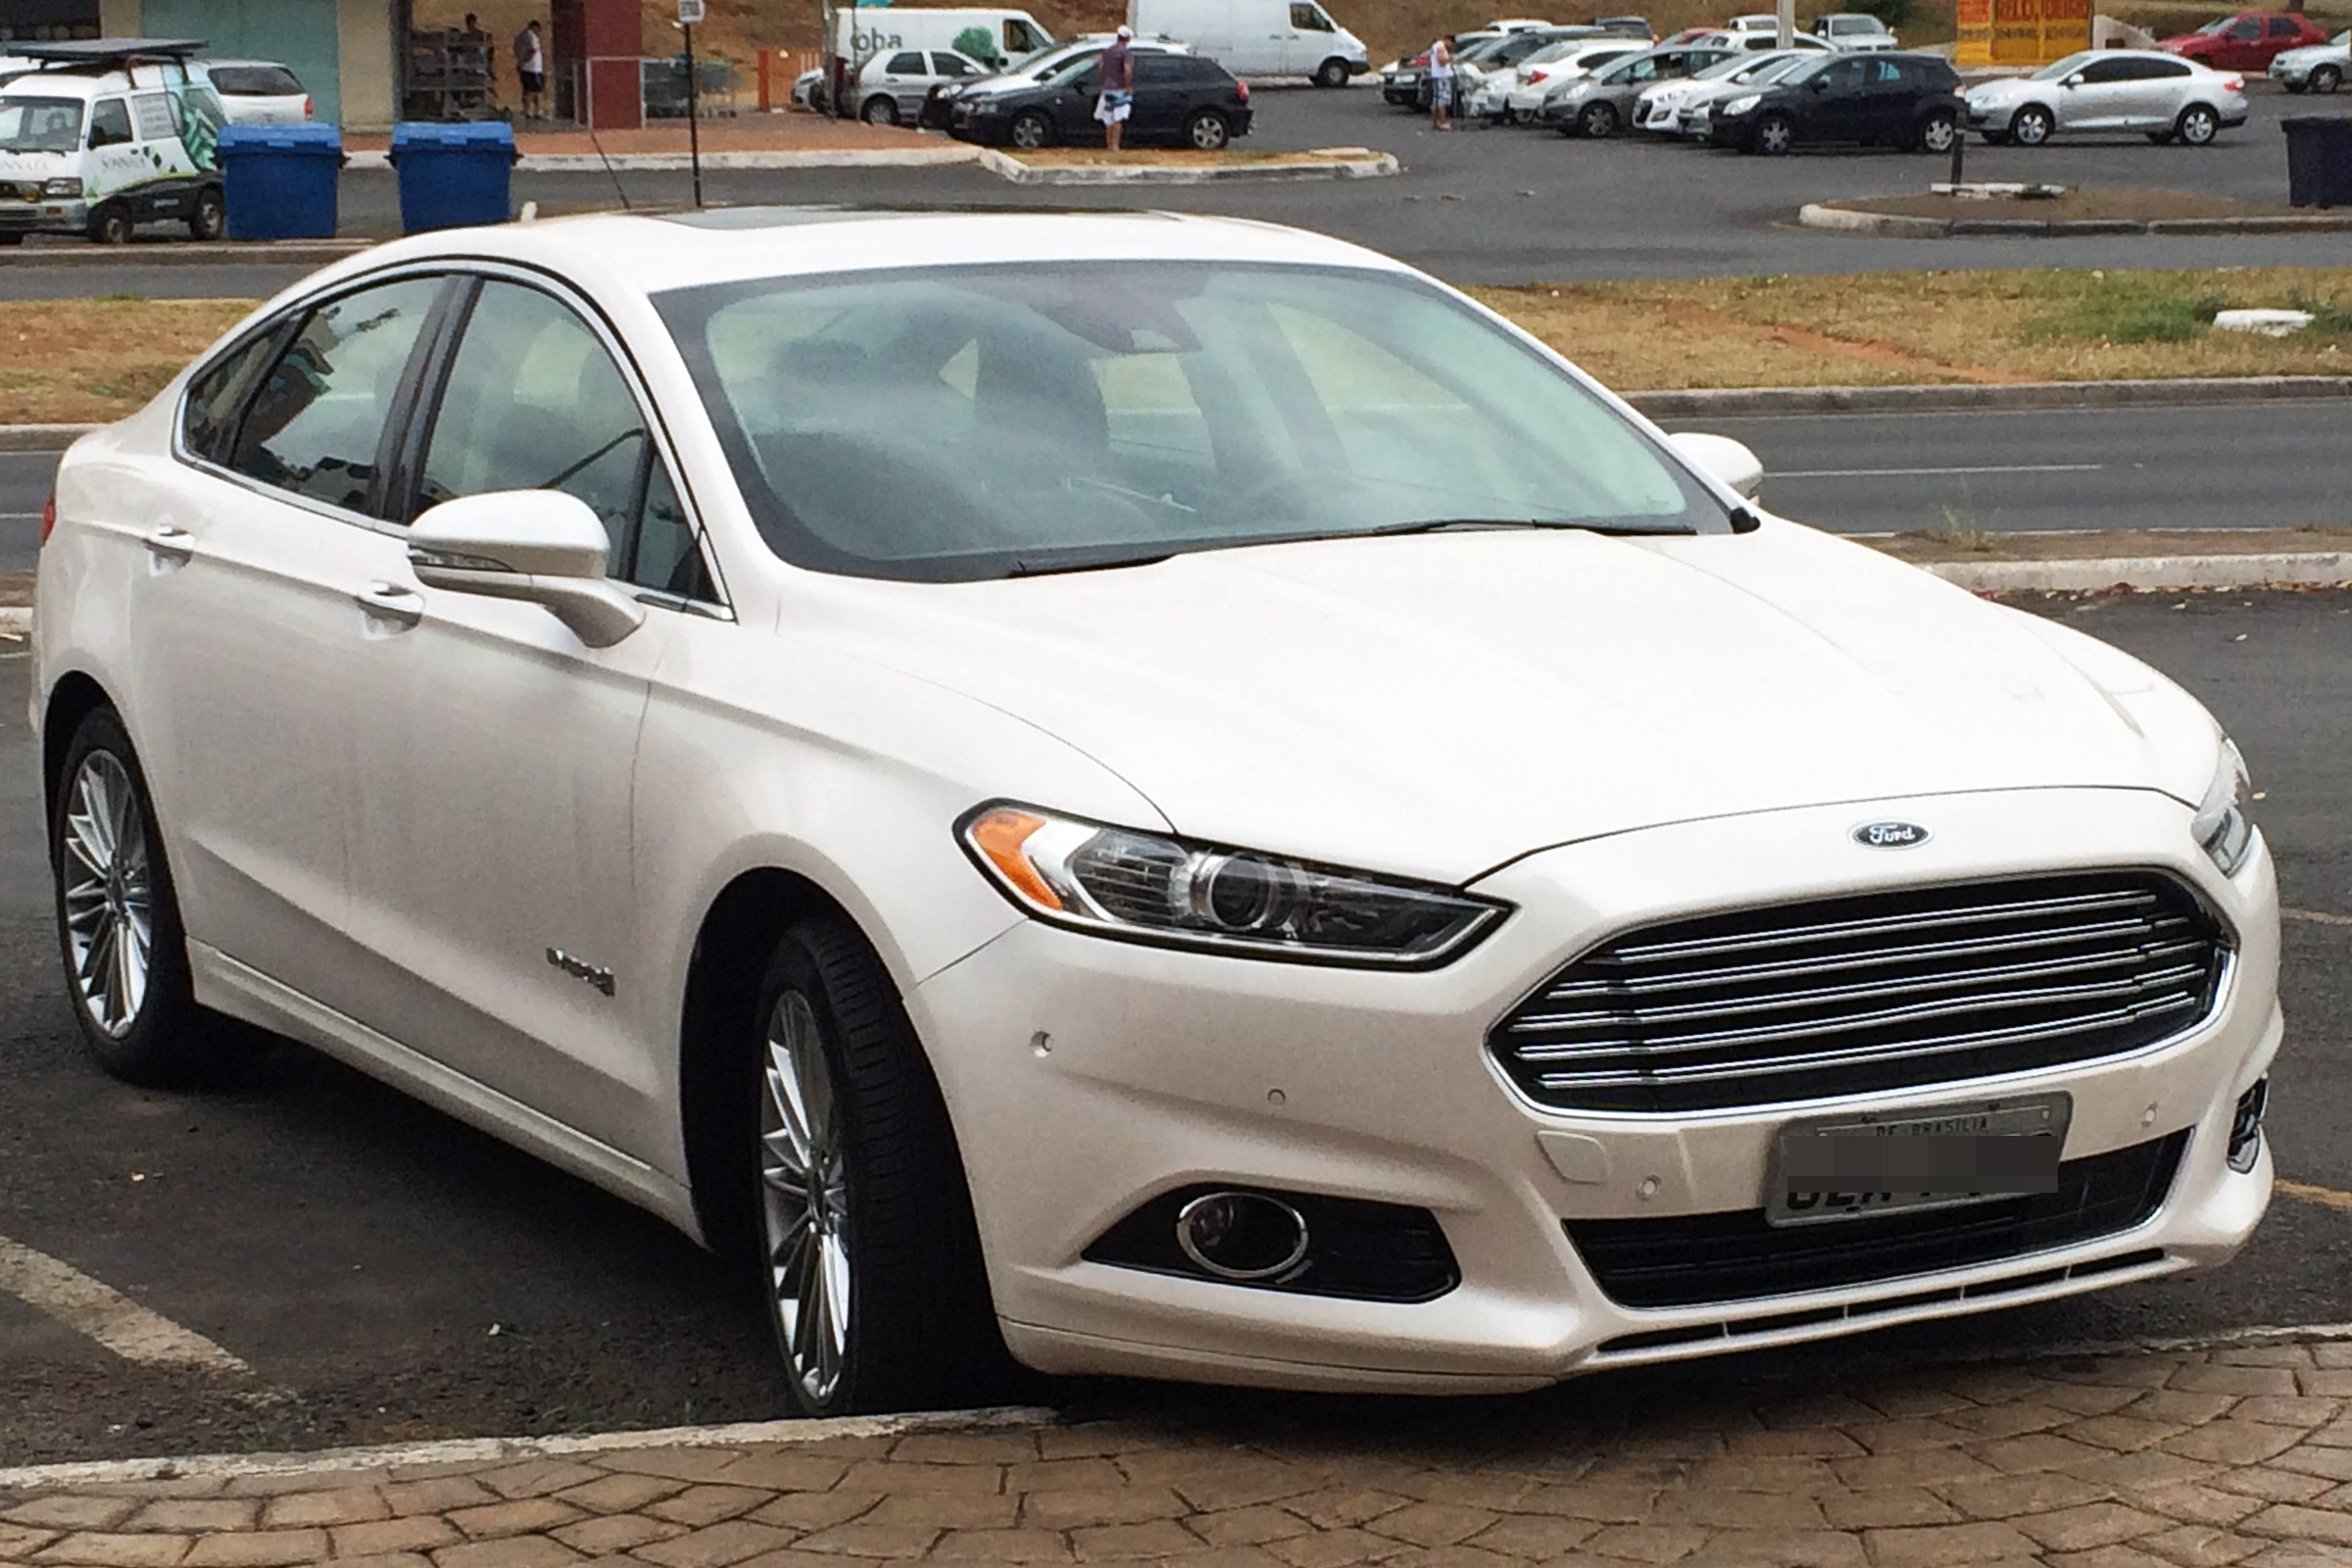 2015 ford fusion wiring diagram hl 8466  2010 ford fusion hybrid l4 25 liter electric gas grille  2010 ford fusion hybrid l4 25 liter